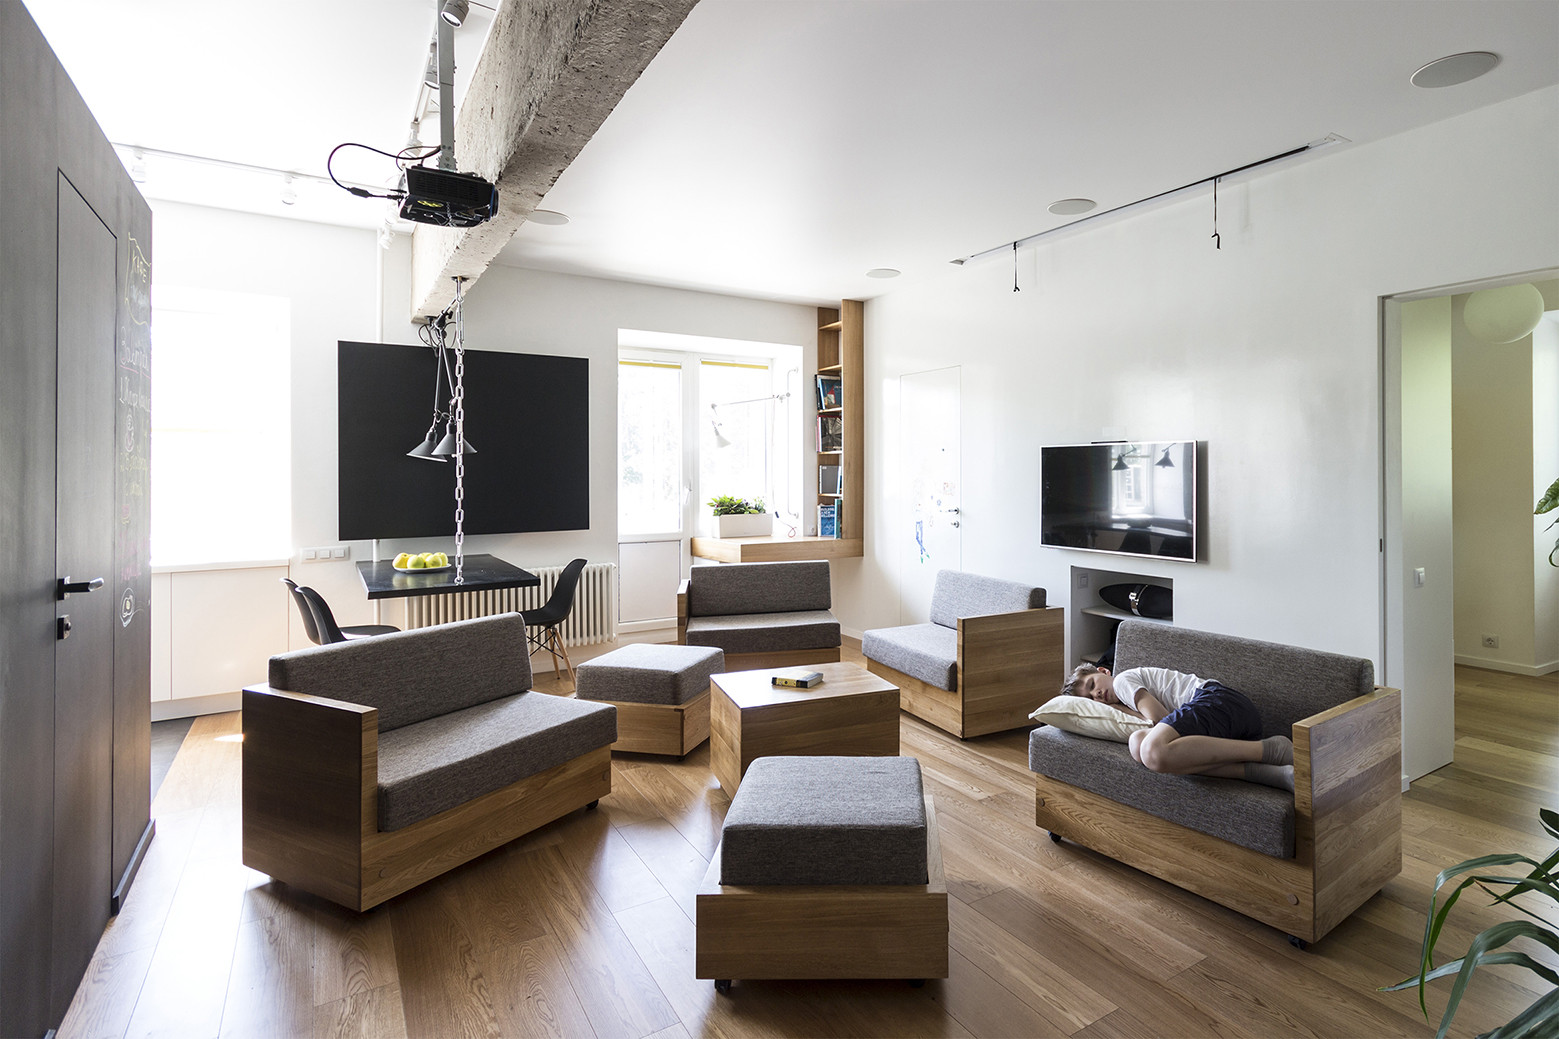 Simple and non-toxic finishes, and modular furnitures in the living area allow for multipurpose use of the space: project by Bagritsky / Ruetemple © Ruetemple